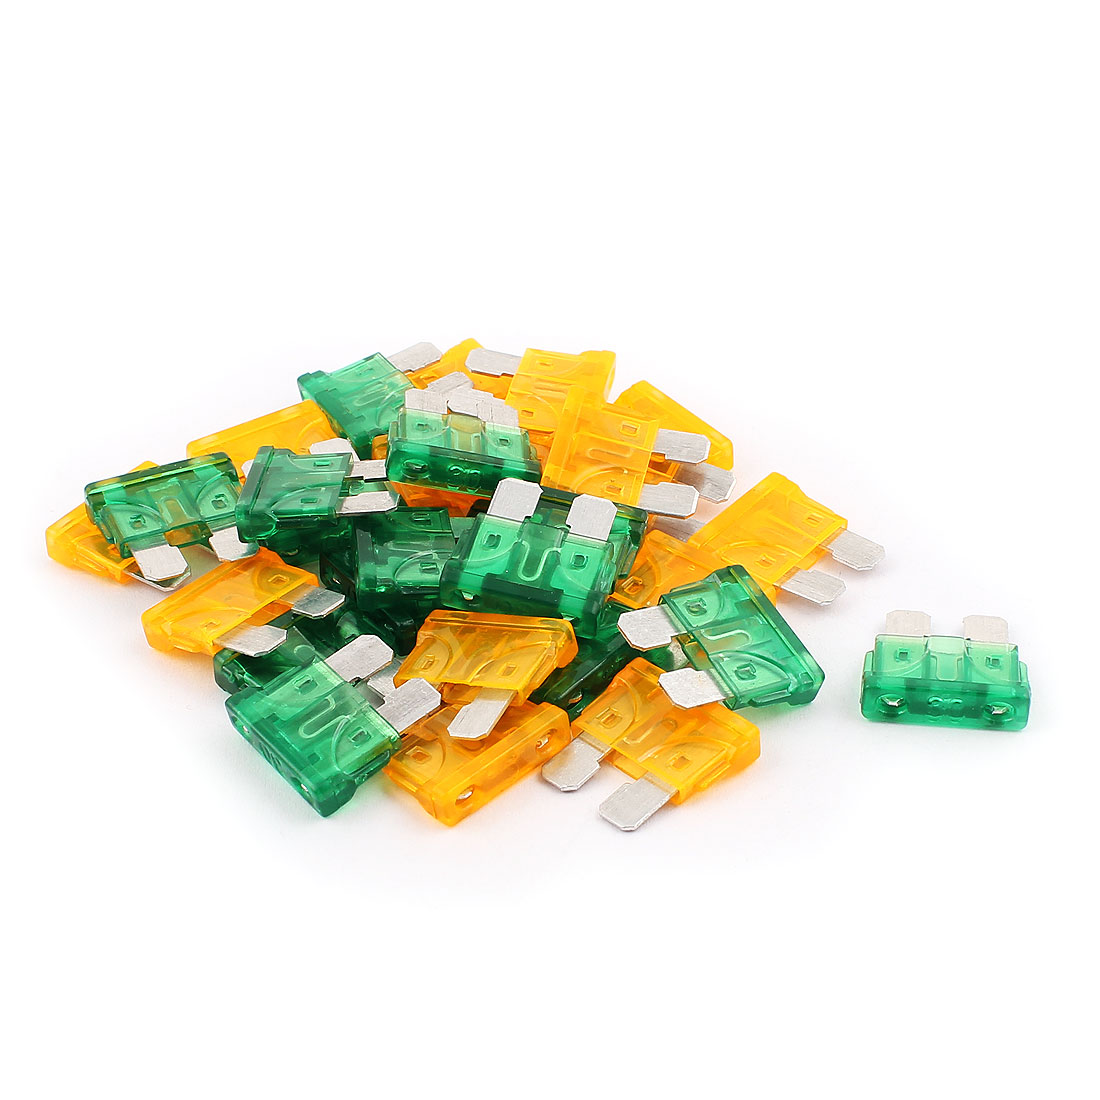 30pcs Orange Green 30A 5A Plastic Casing Mini Blade Fuse for Car Truck Vehicle Motorcycle SUV